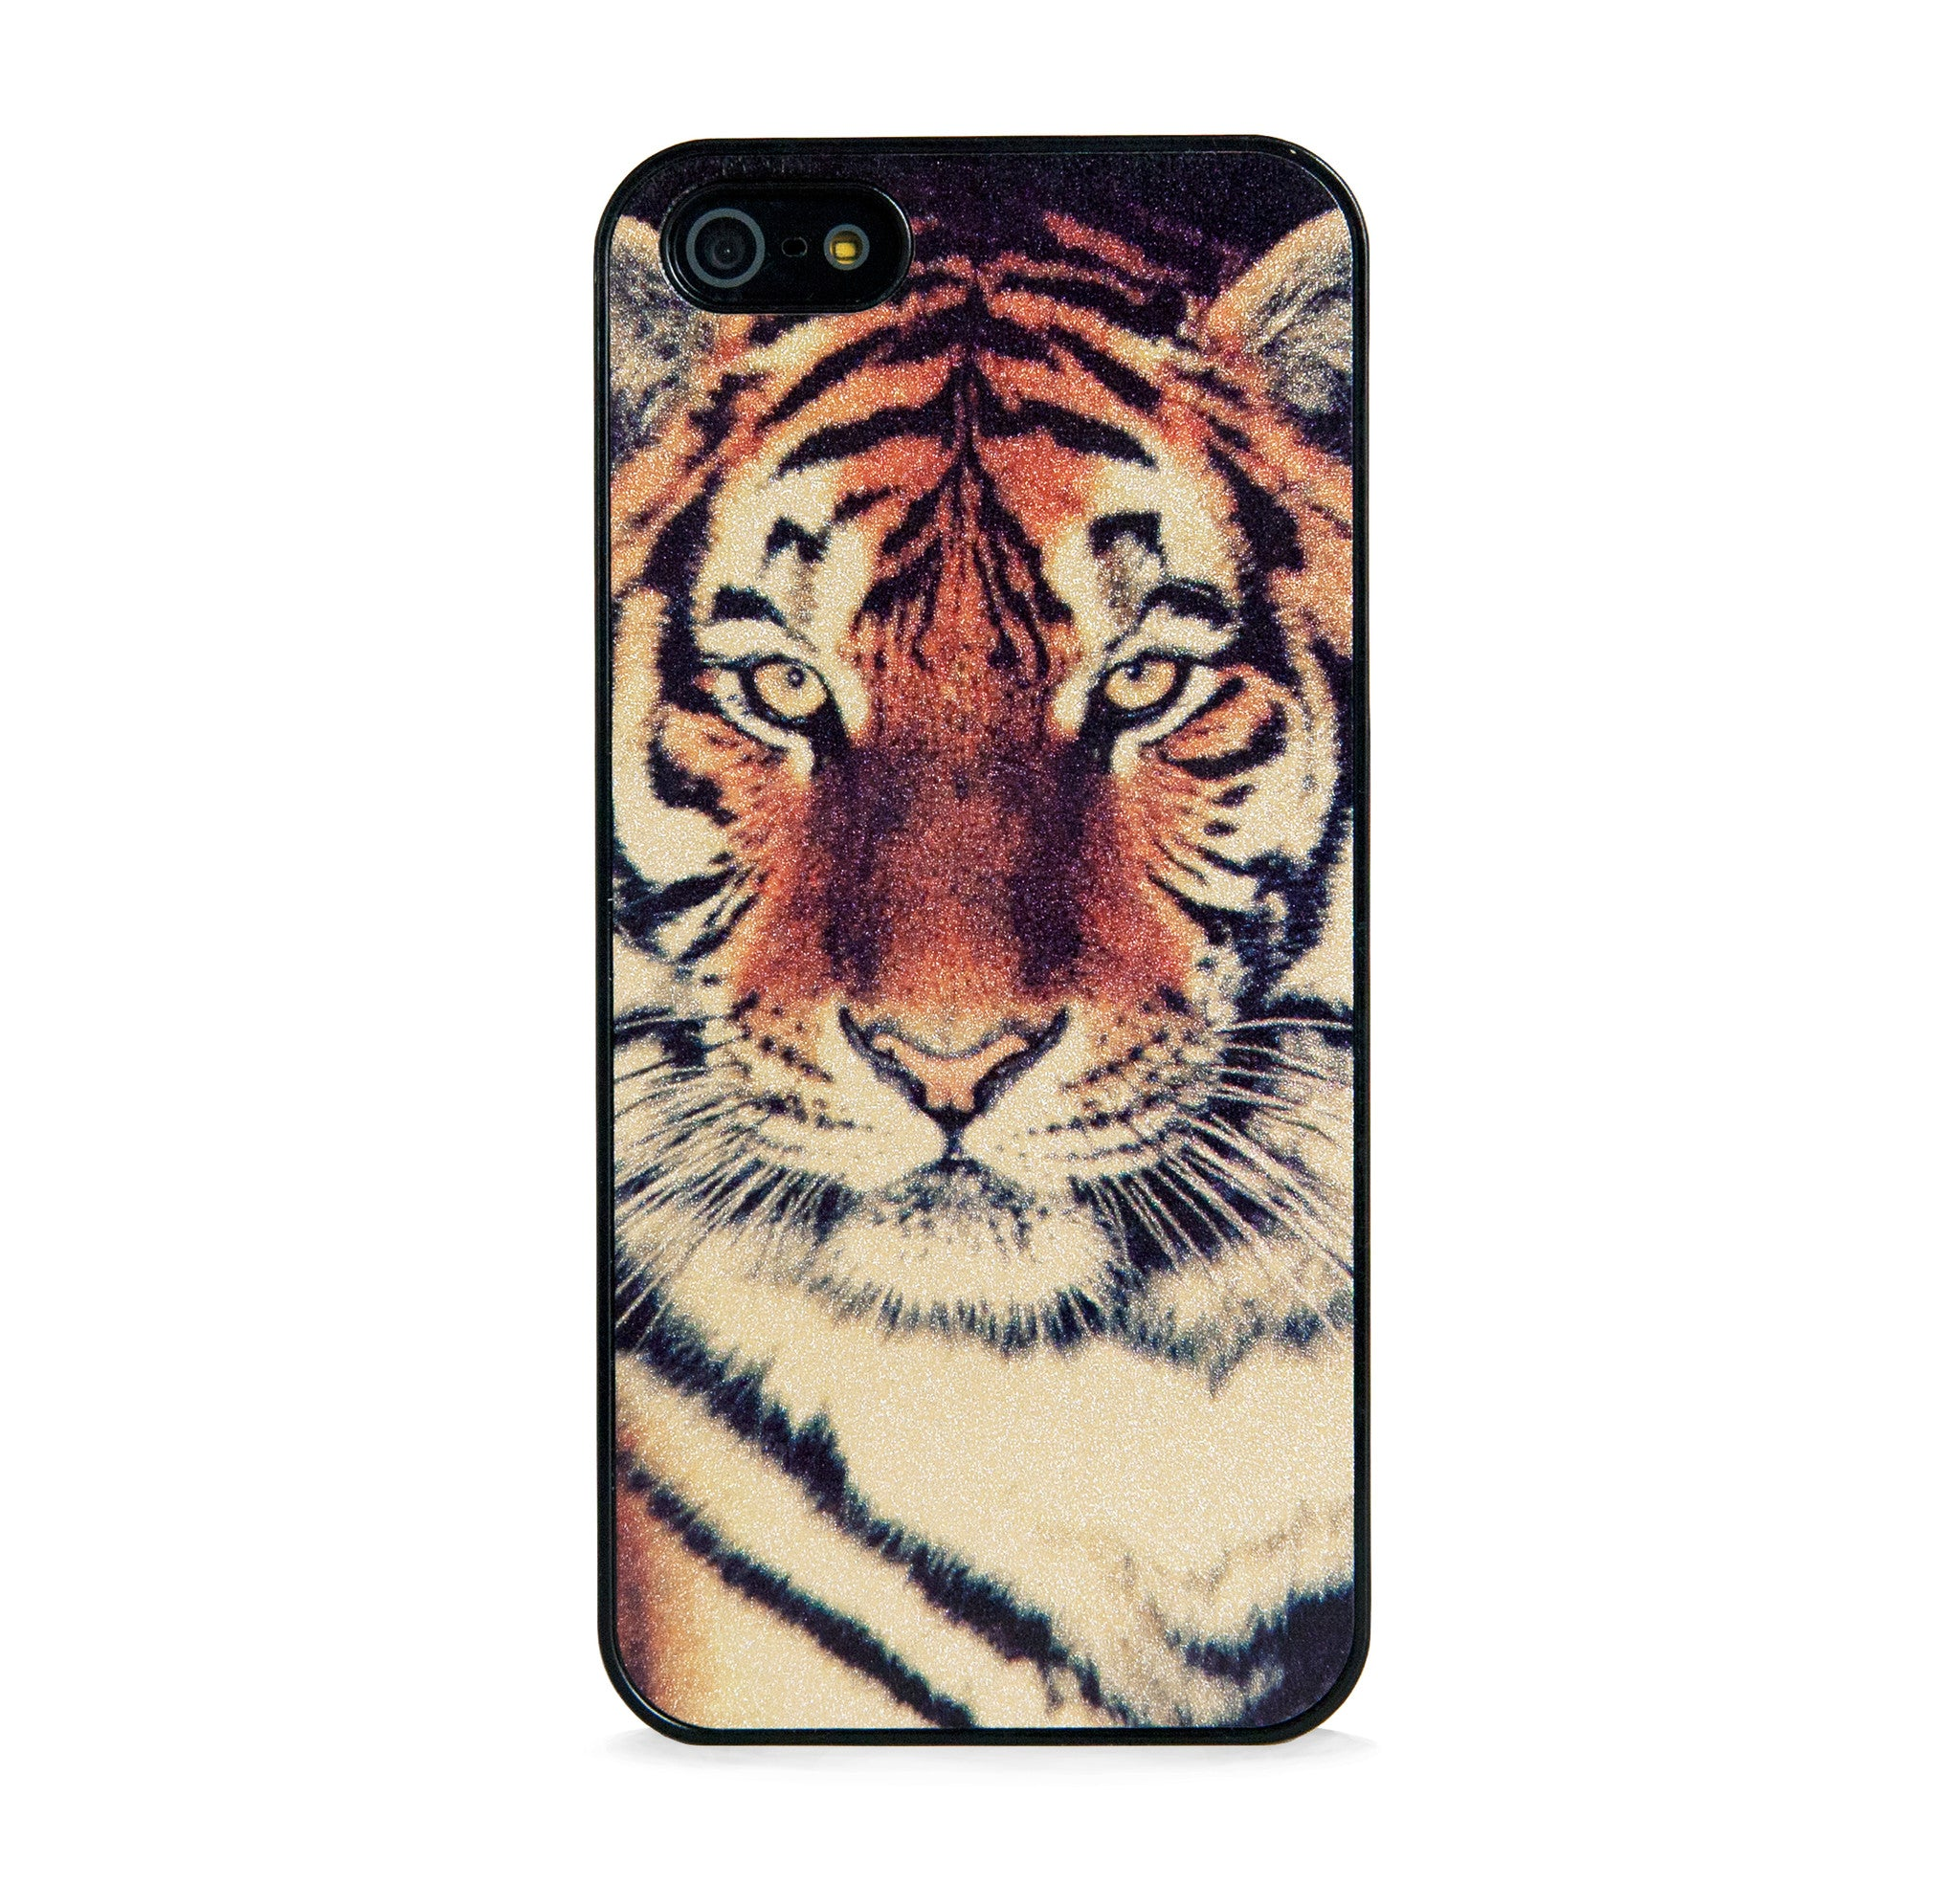 WILD GOLD TIGER IPHONE 5/5S CASE